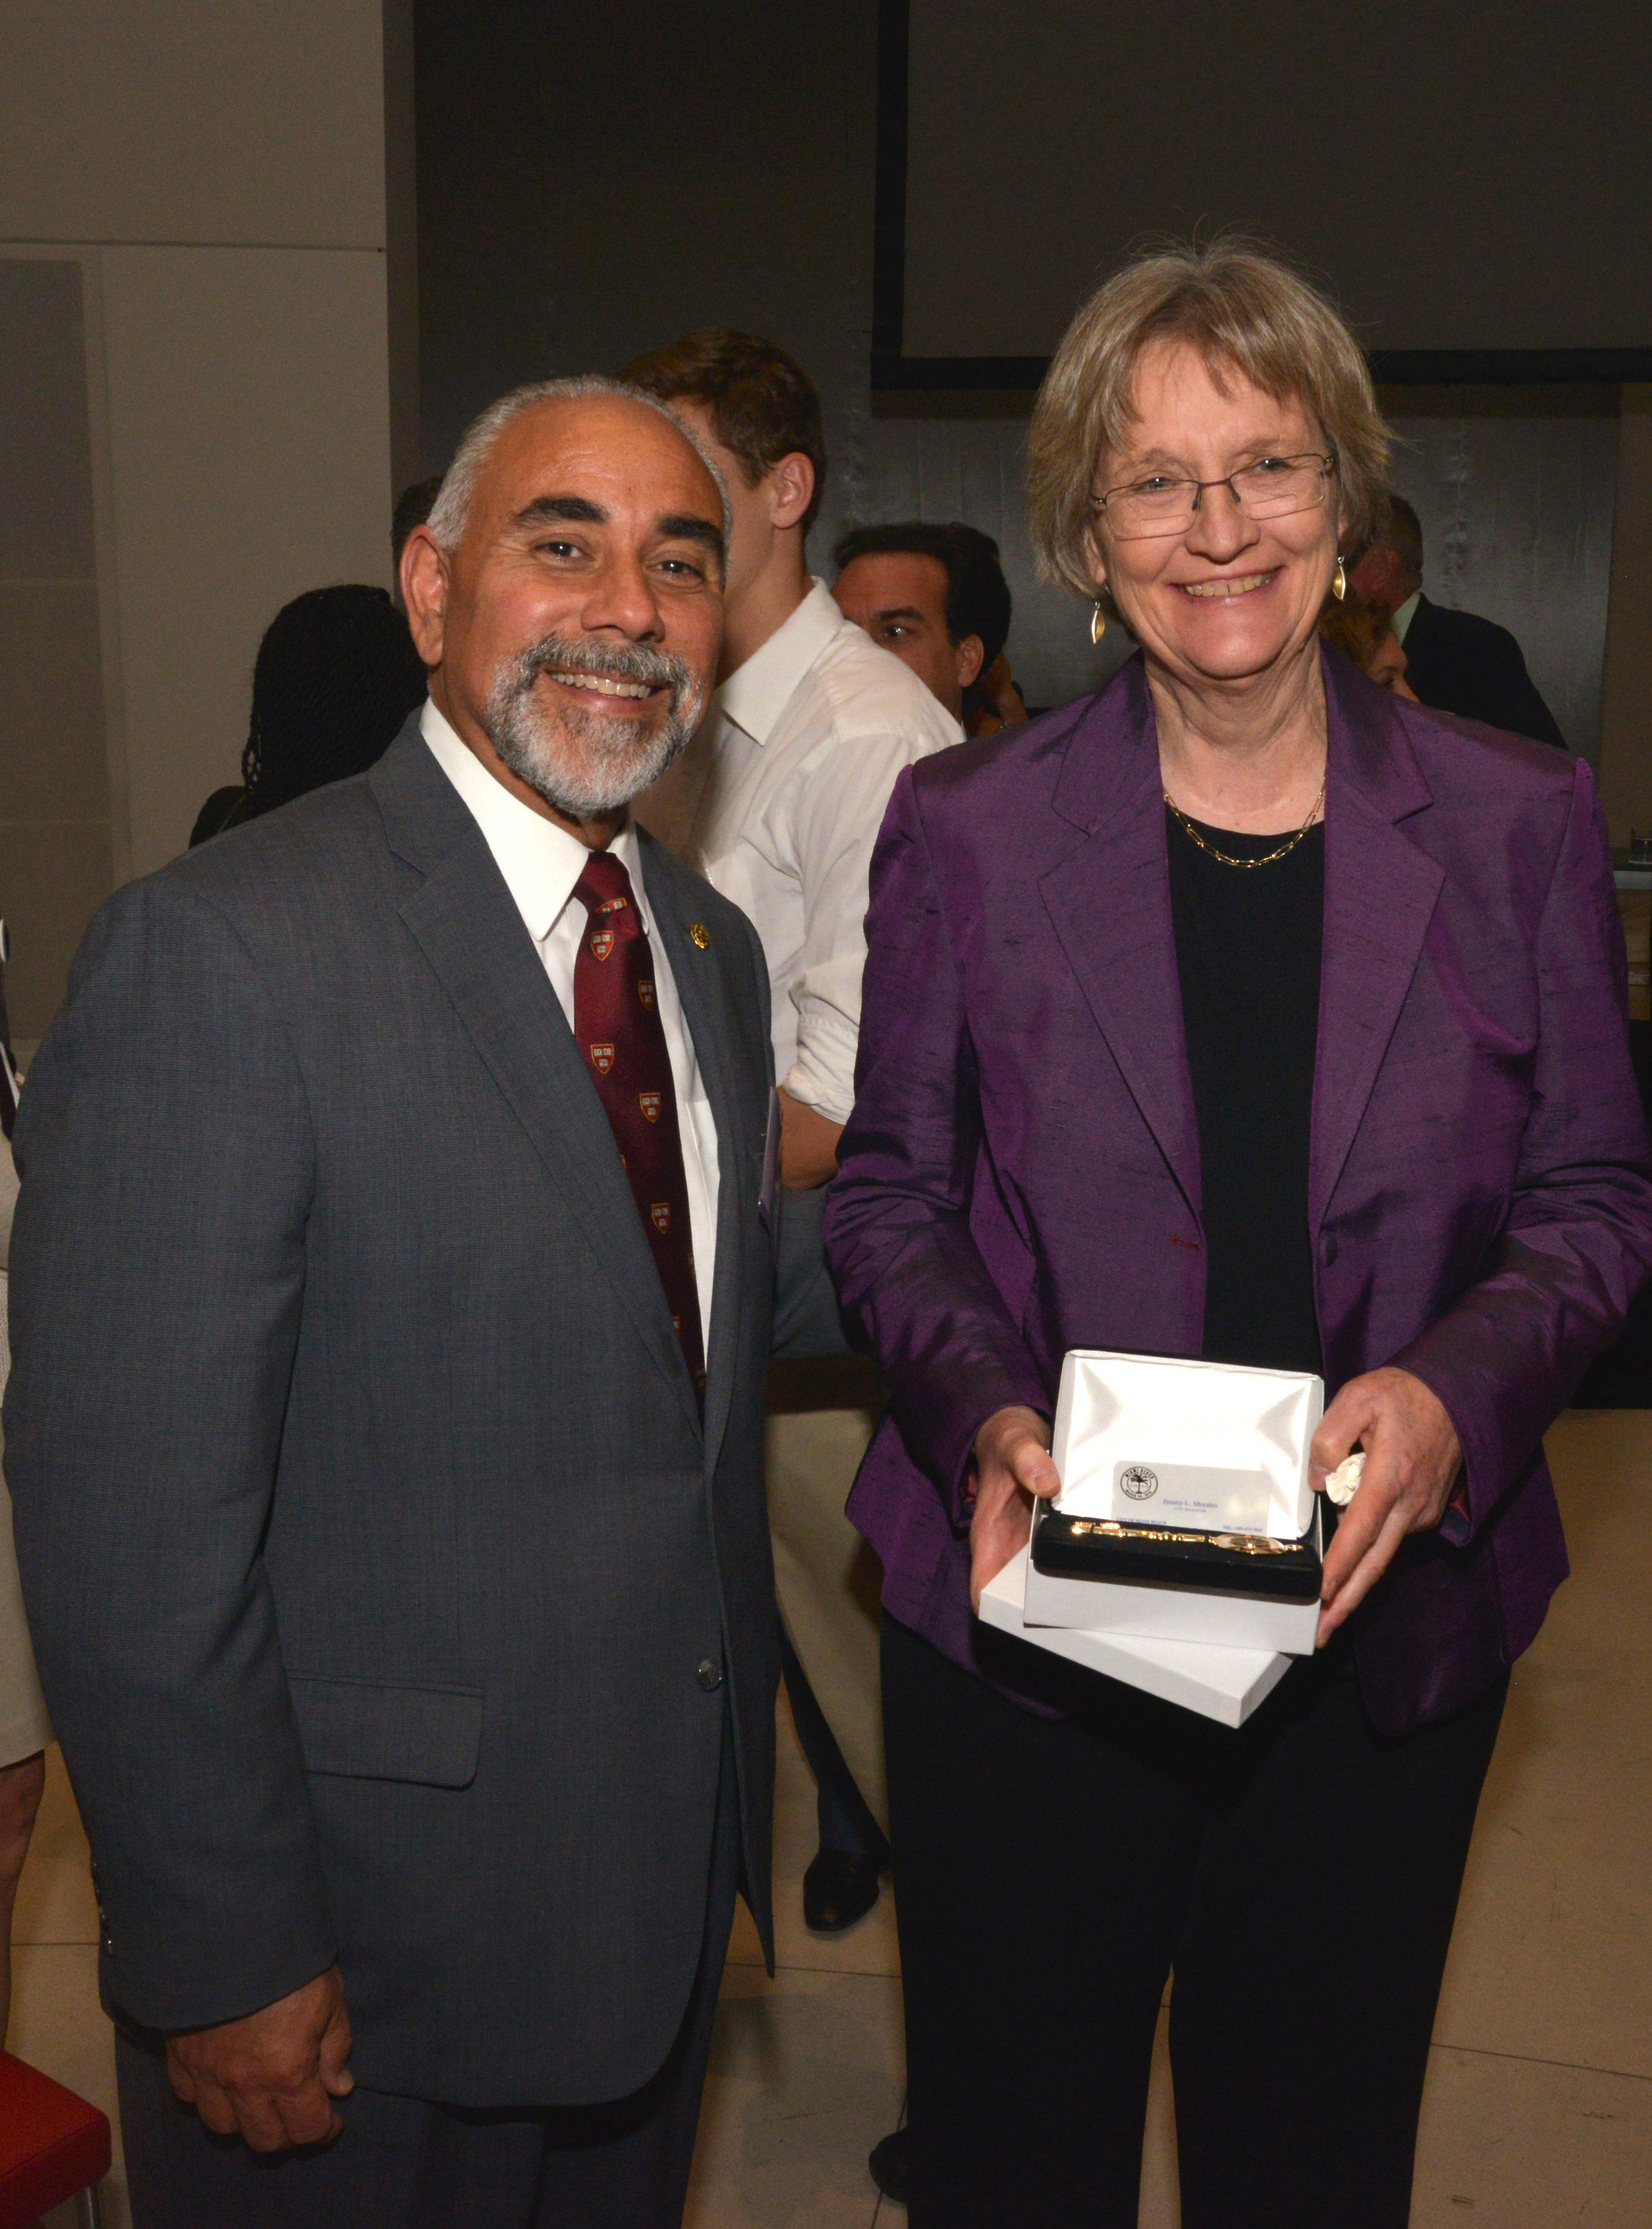 Jimmy Morales, City Manager at City of Miami Beach with Drew Gilpin Faust, President and Lincoln Professor of History, Harvard University.